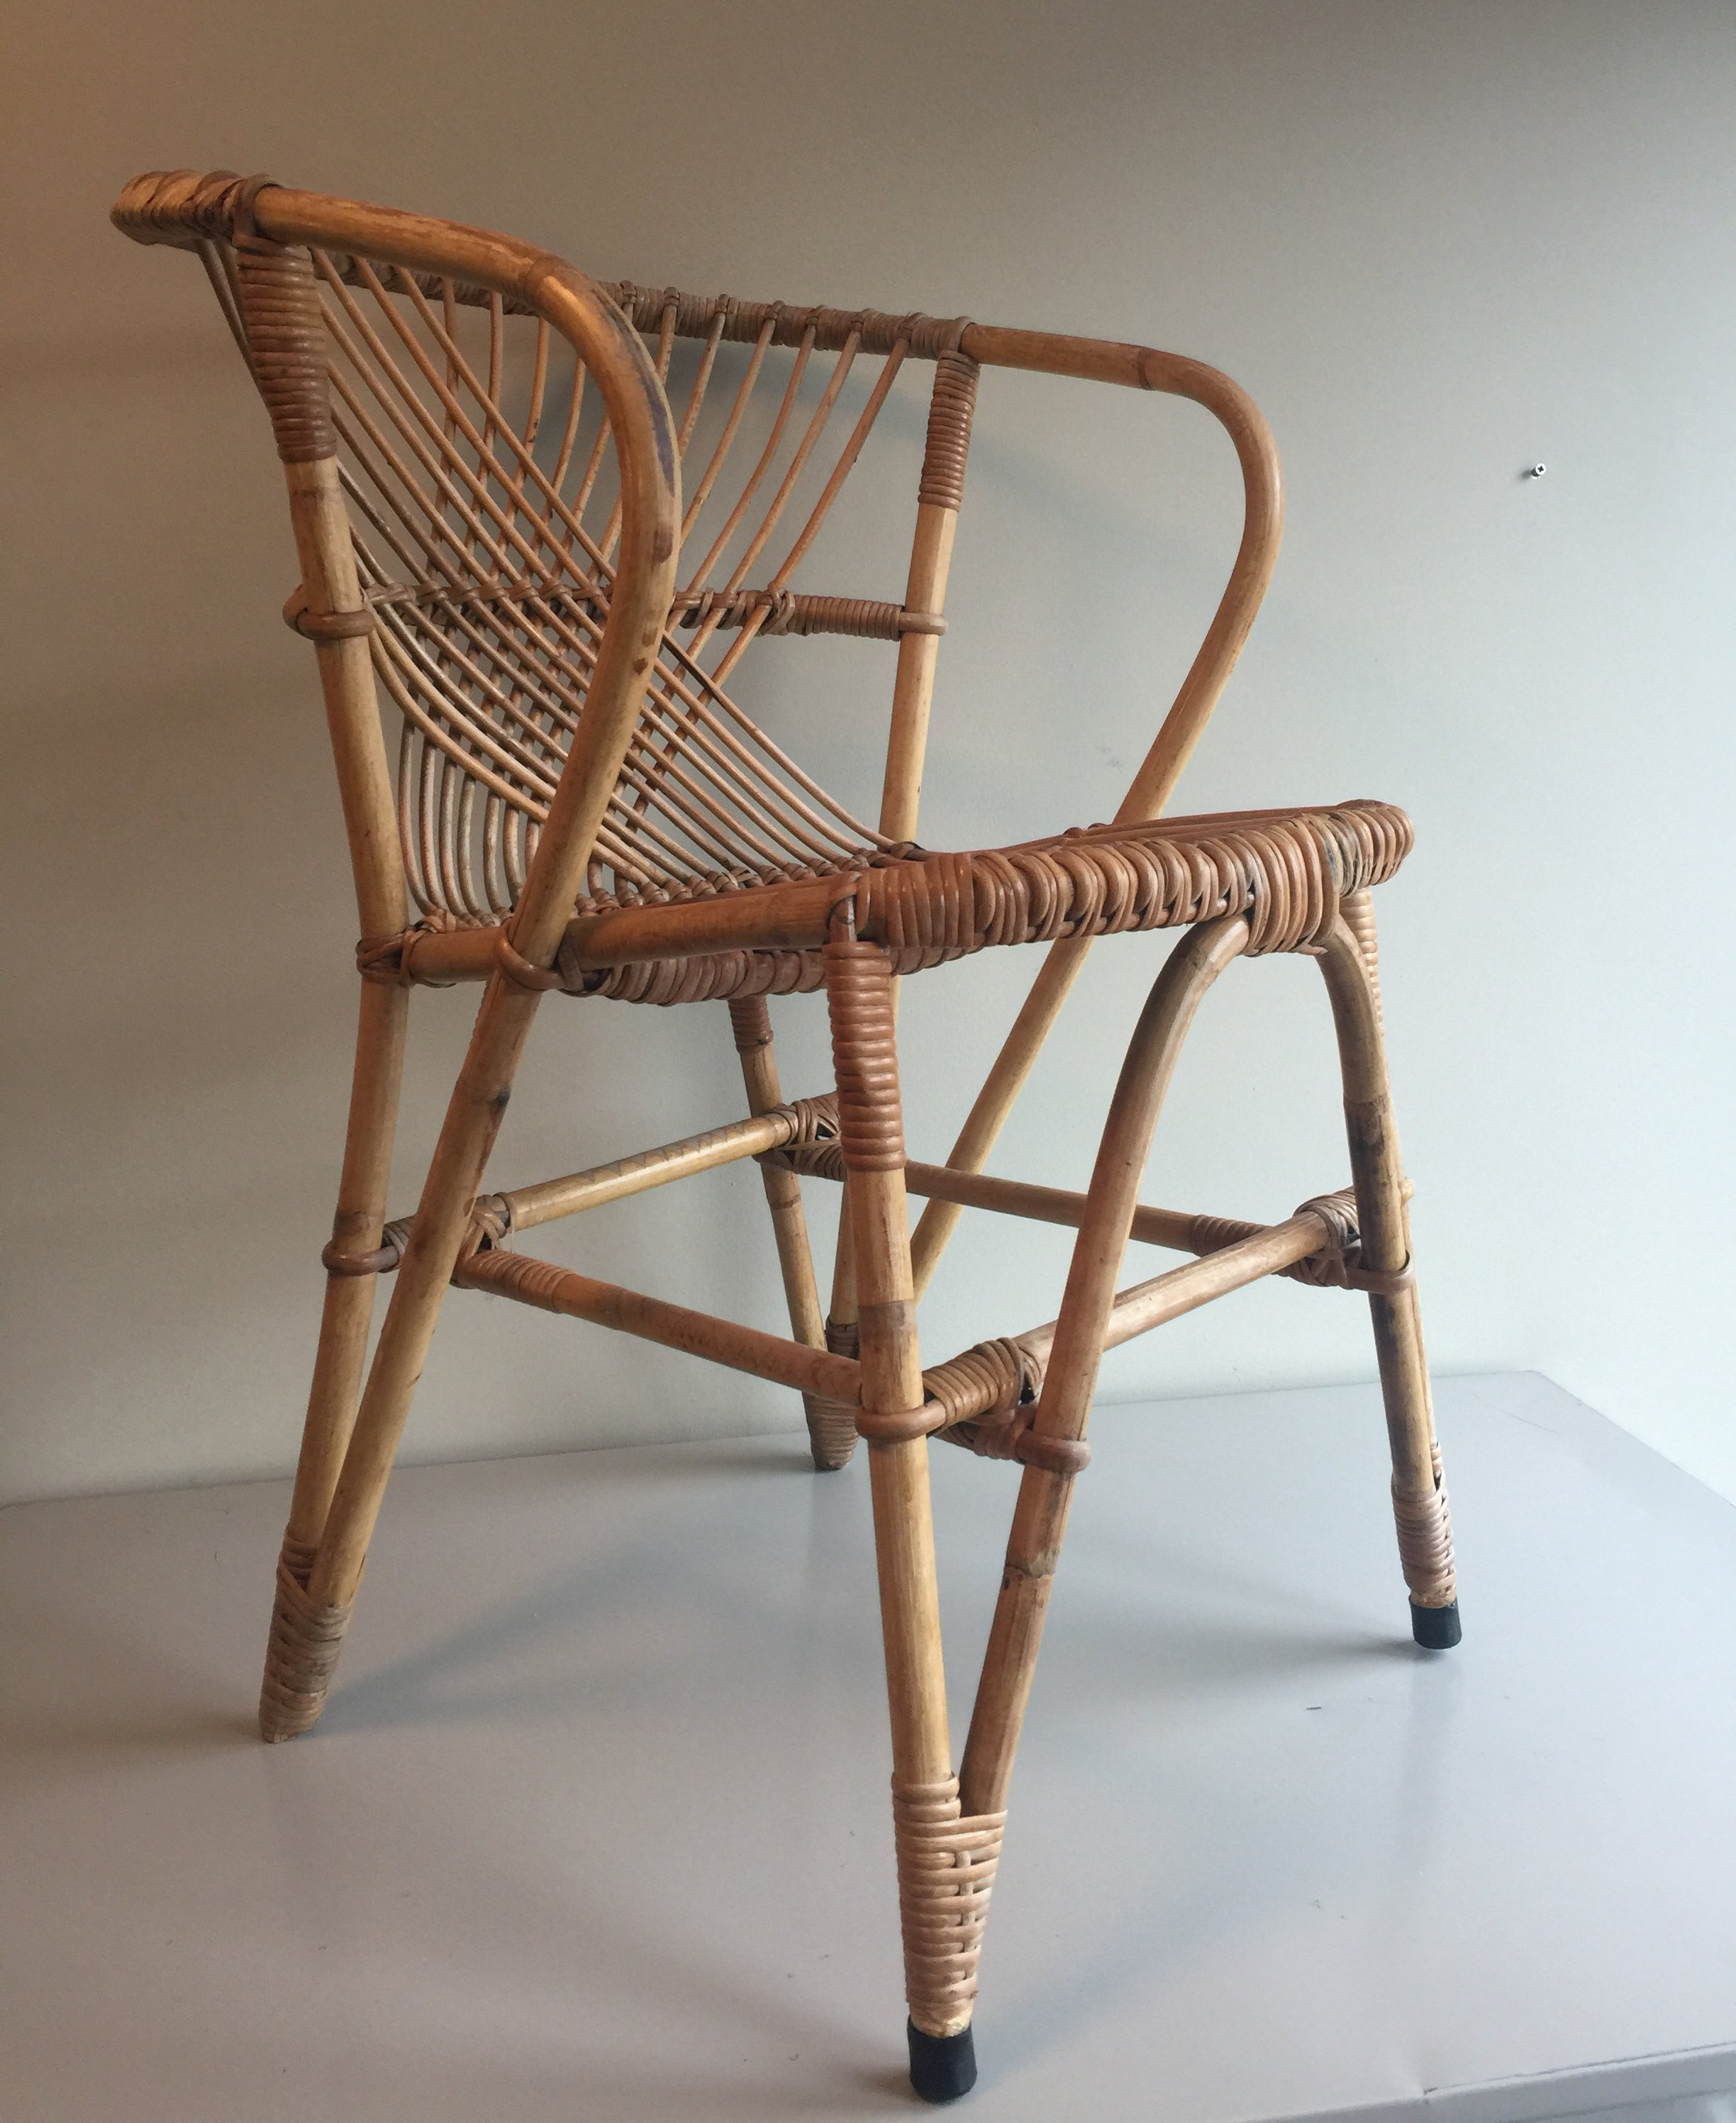 Picture of: Mid Century Rohe Rattan Lounge Chair 89744